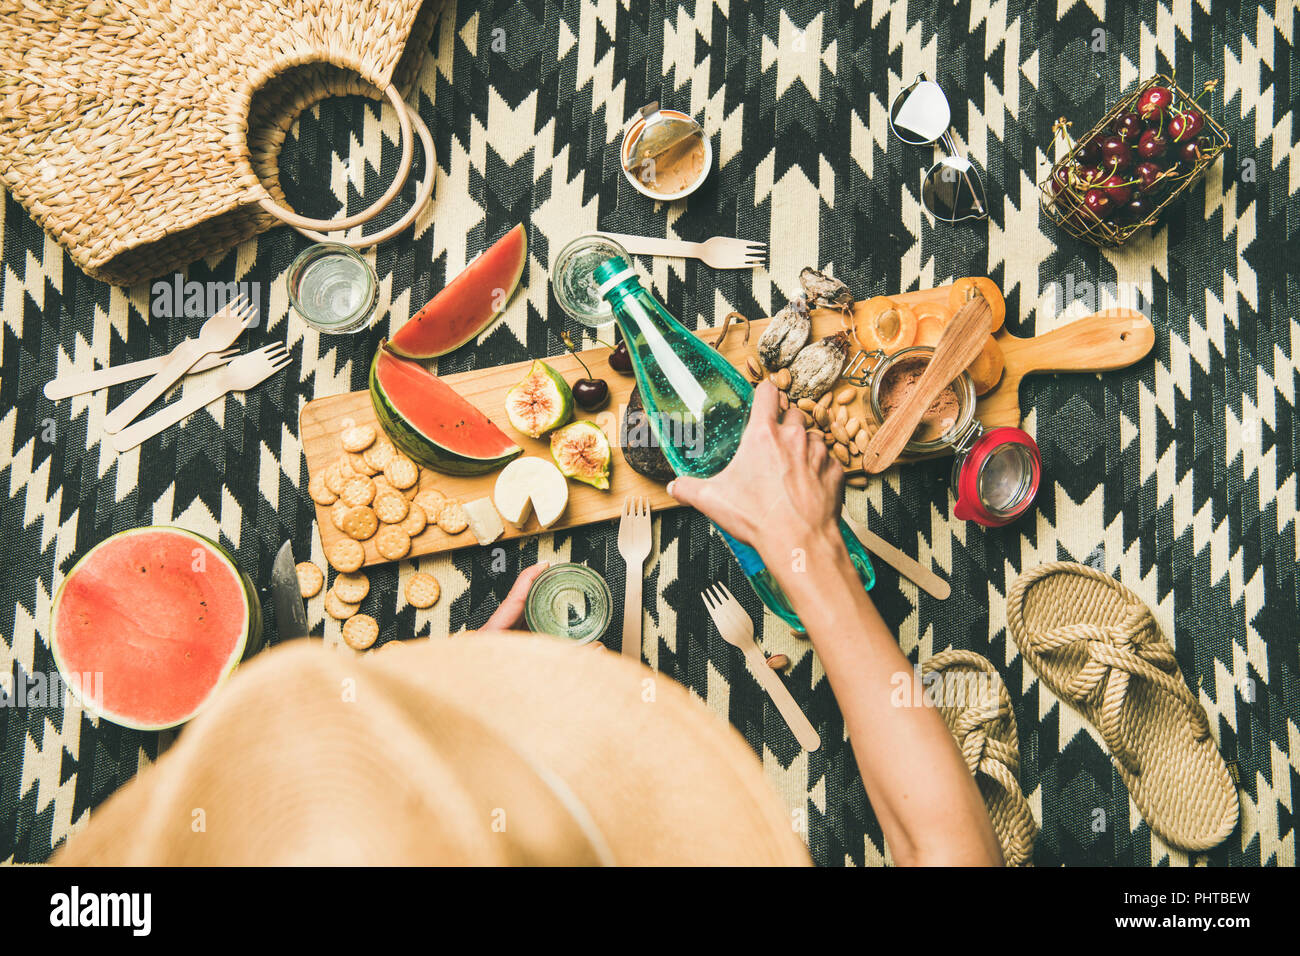 Summer beach picnic setting. Flat-lay of charcuterie board with snacks, watermelon, cherries, beach feminine accesories over picnic blanket, top view, - Stock Image